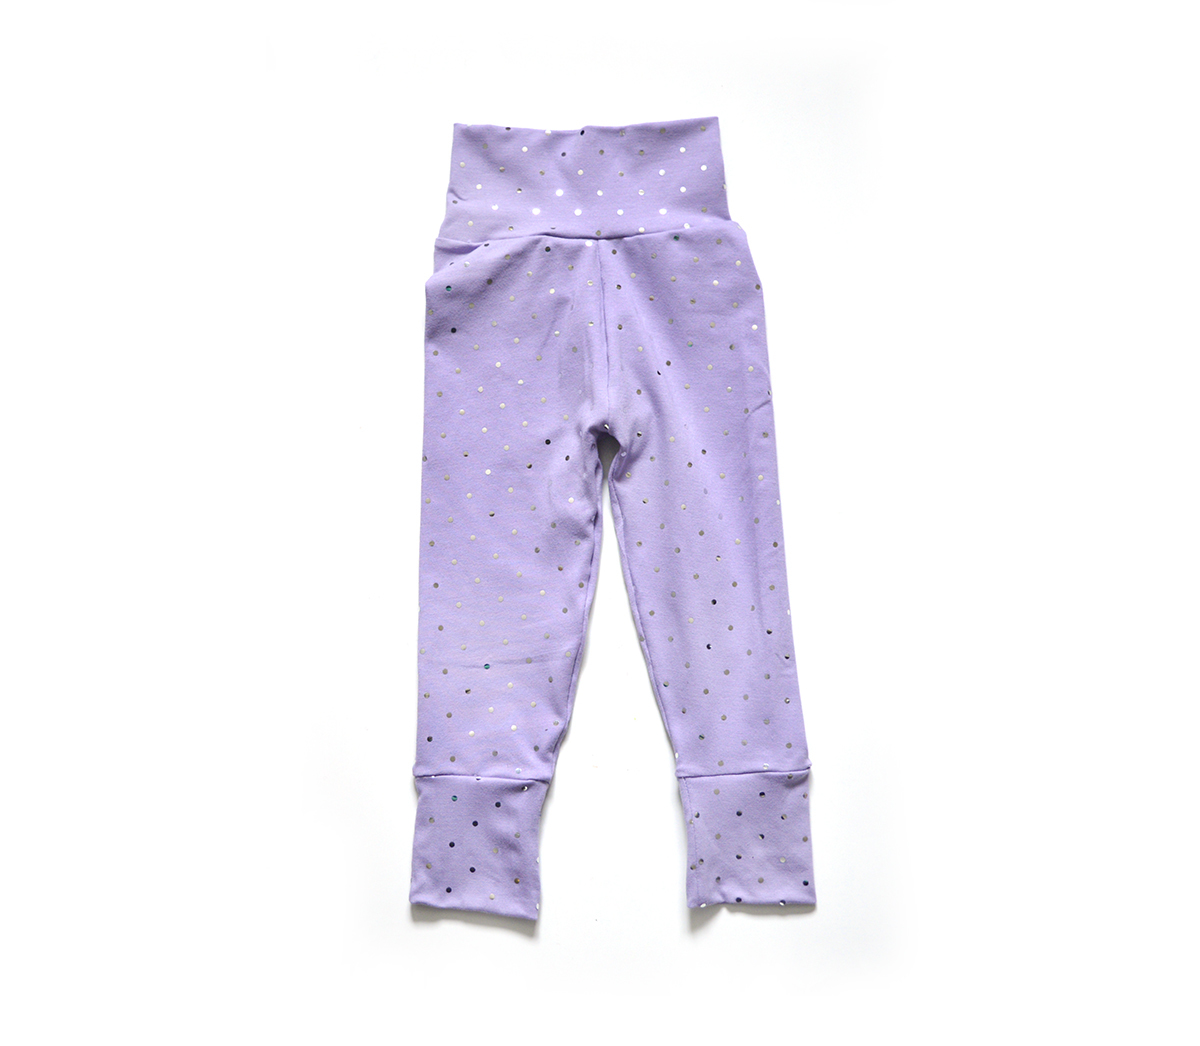 Little Sprout Pants™ Lavender with Mirrored Sequins - Cotton 00773